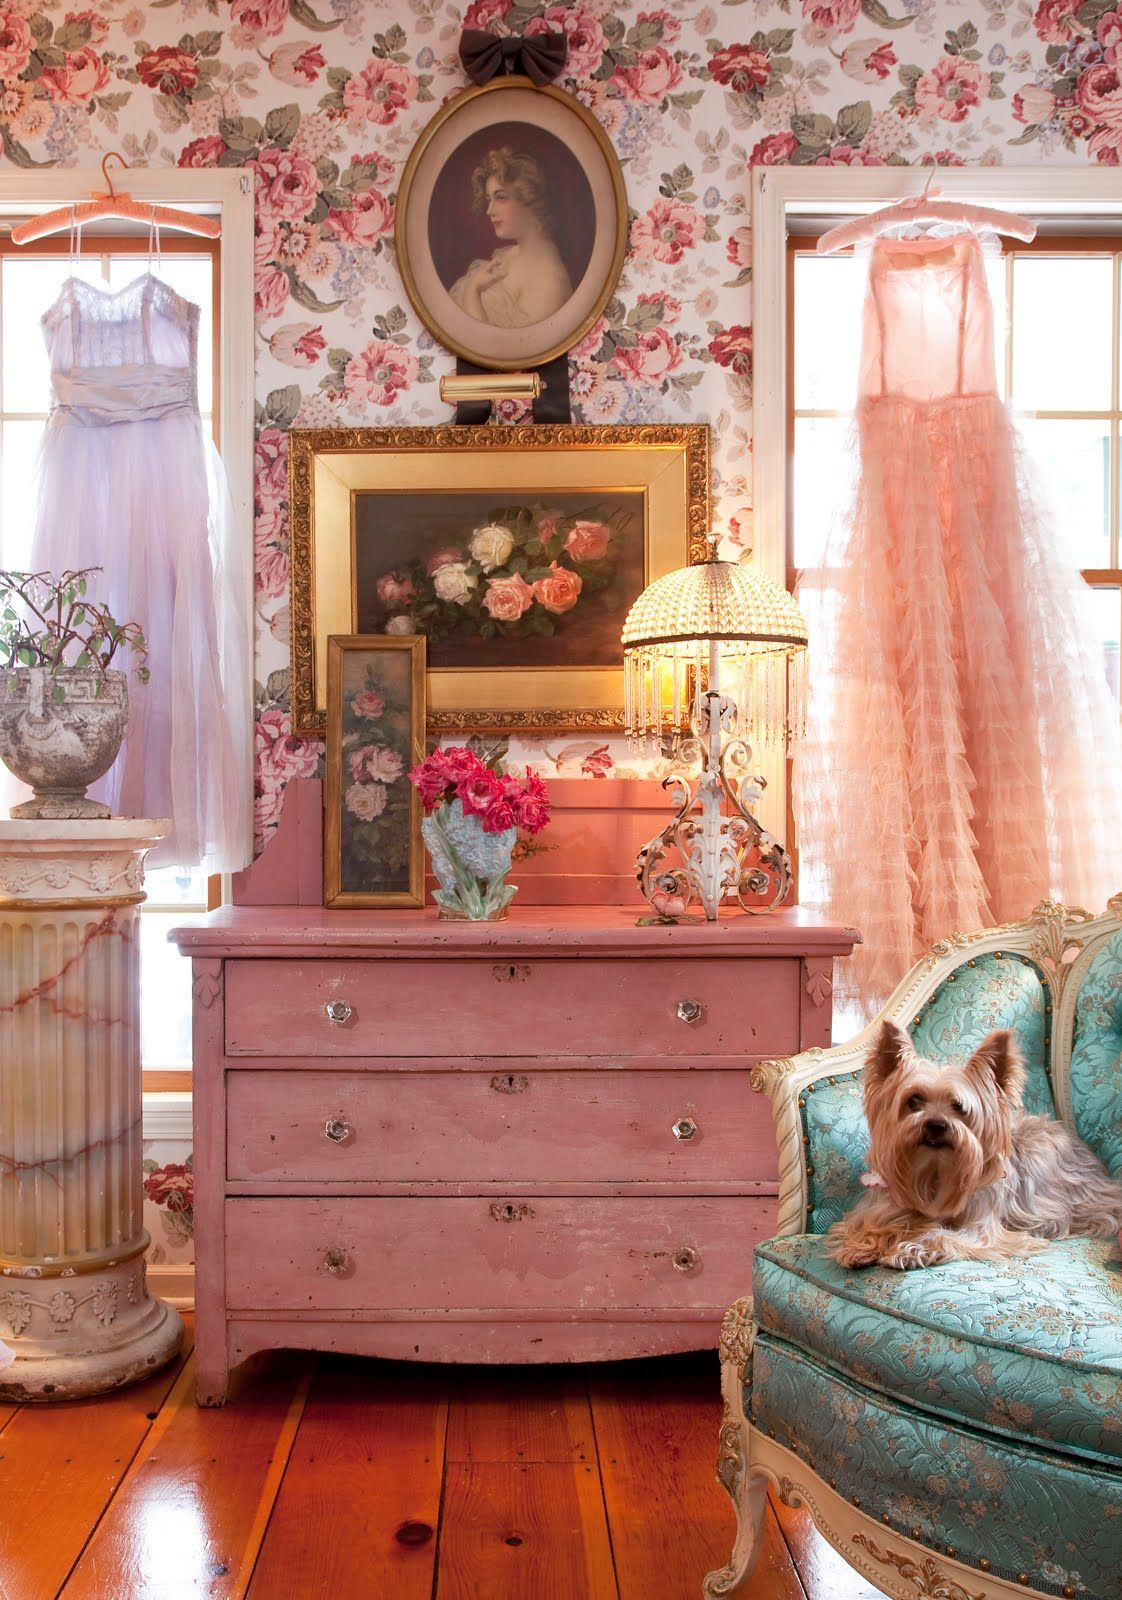 Vintage bedroom ideas tumblr - Vintage Bedroom Decor